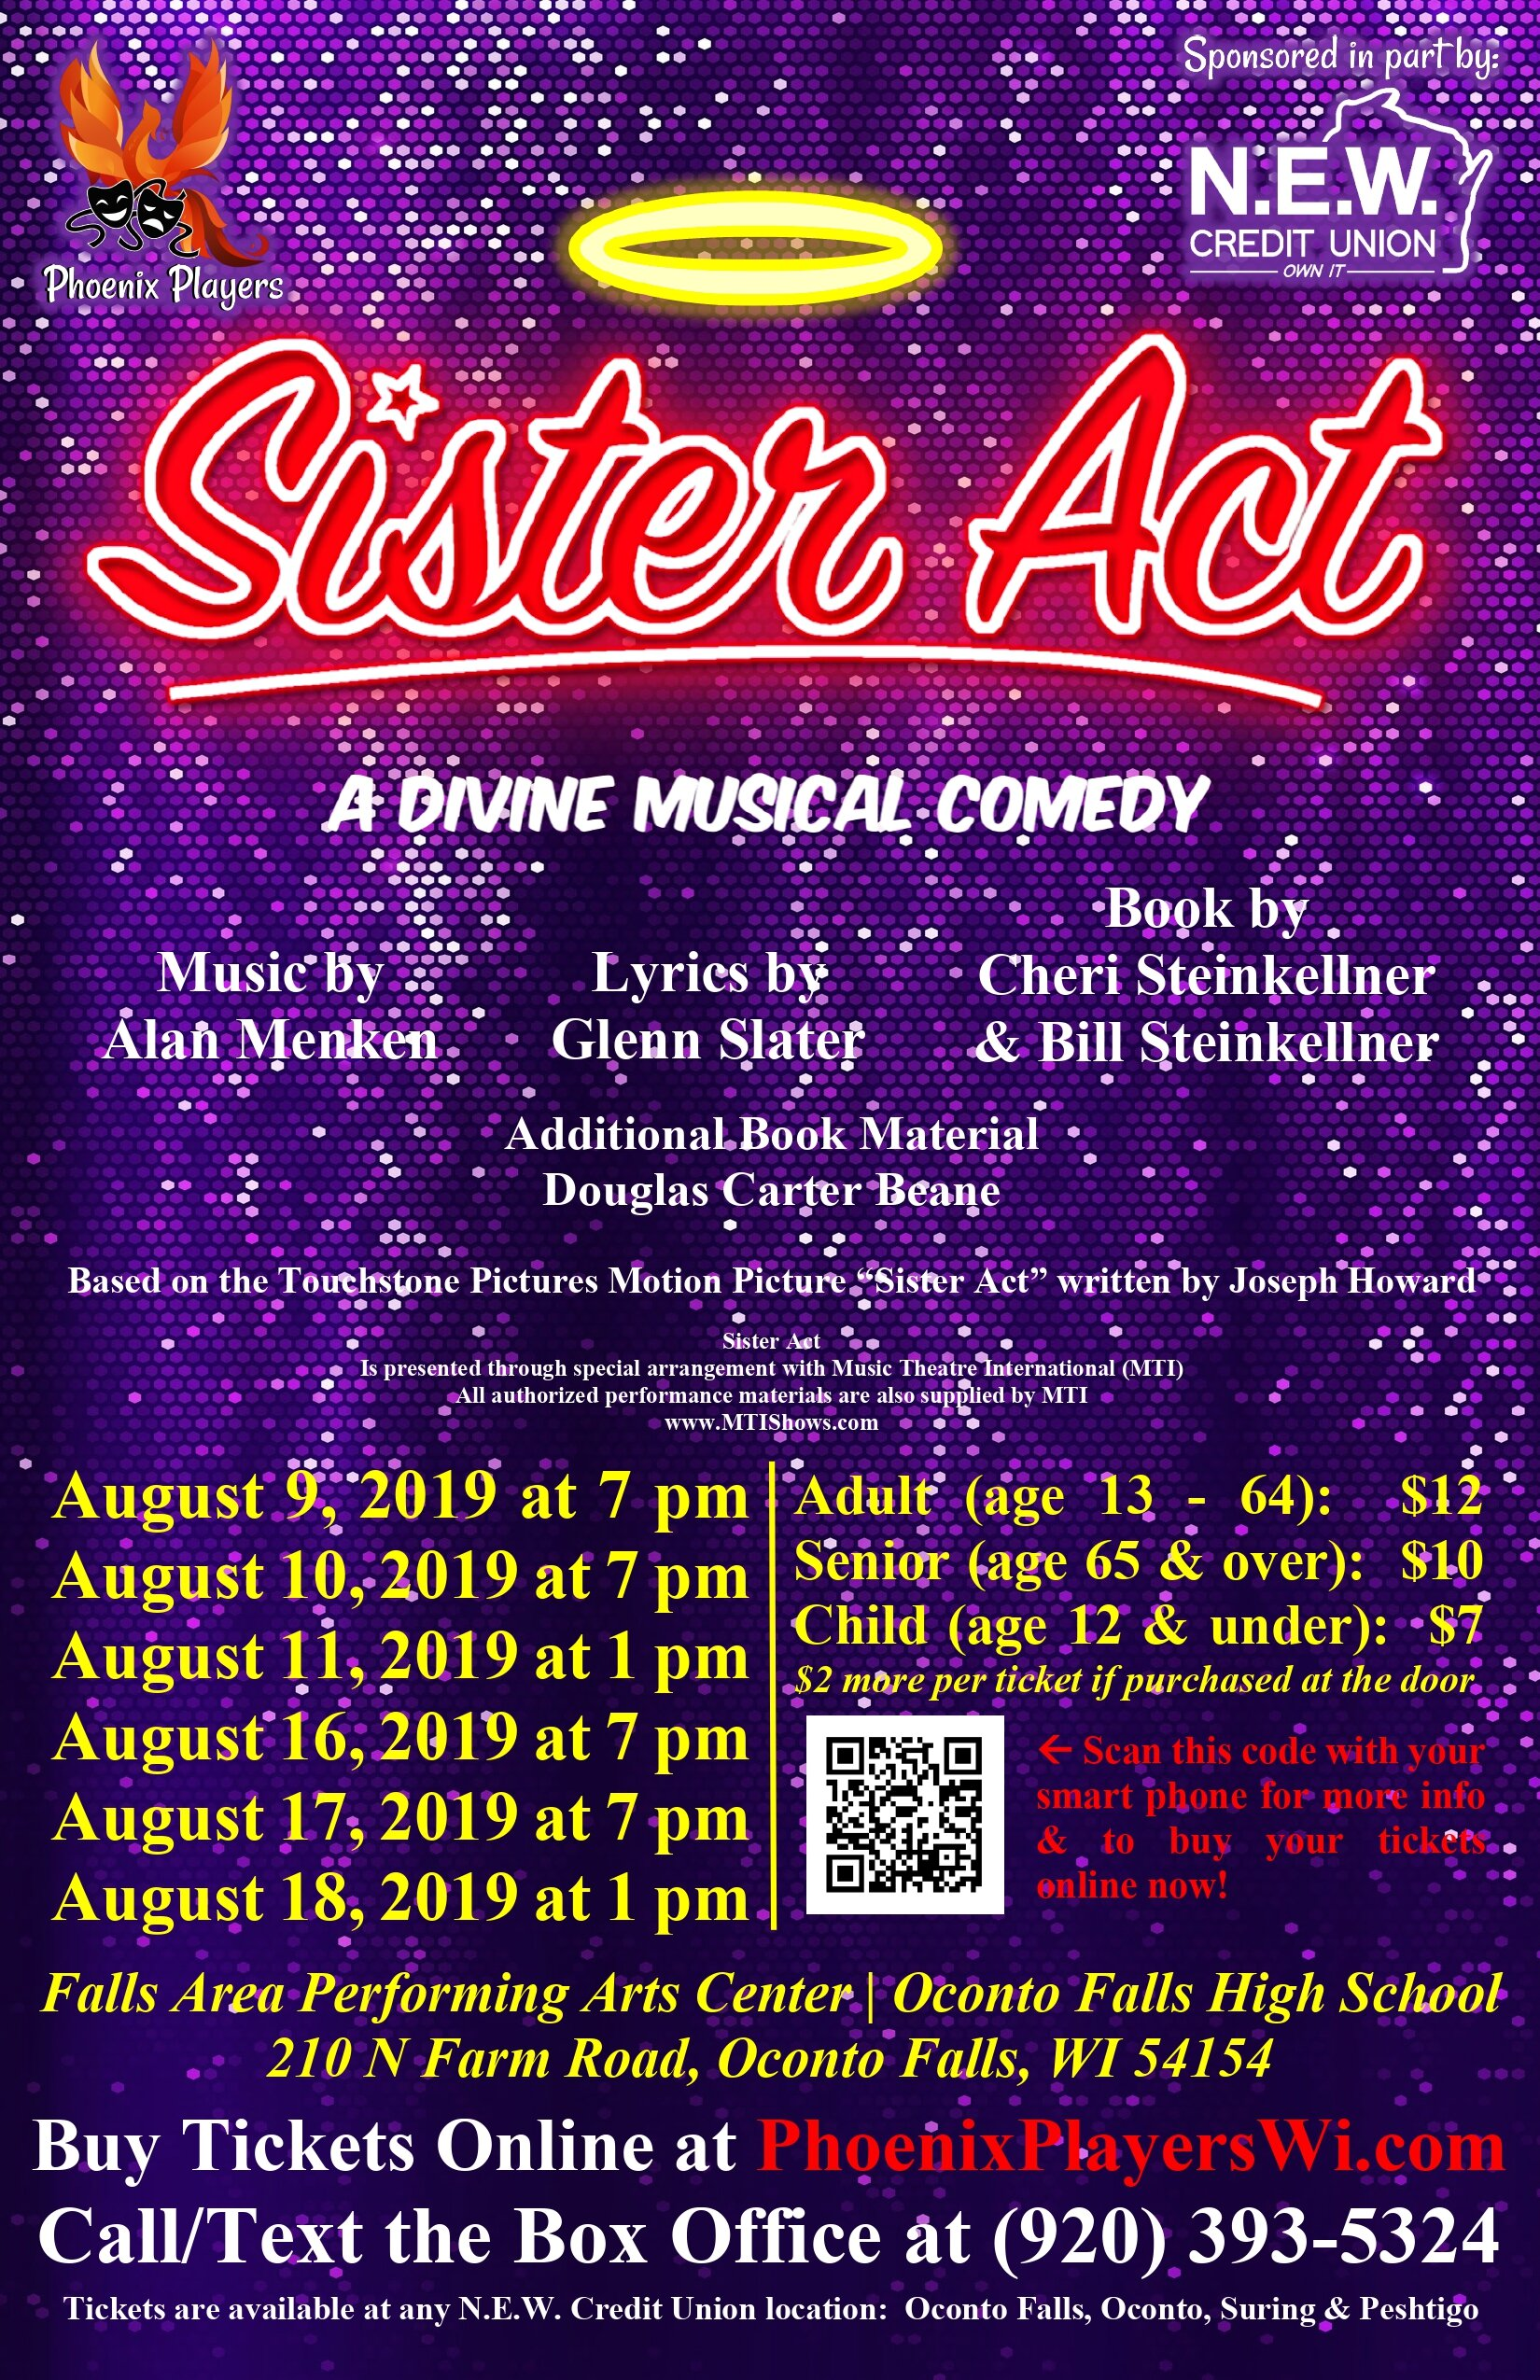 Sister Act Poster - Phoenix Players - Color.jpg